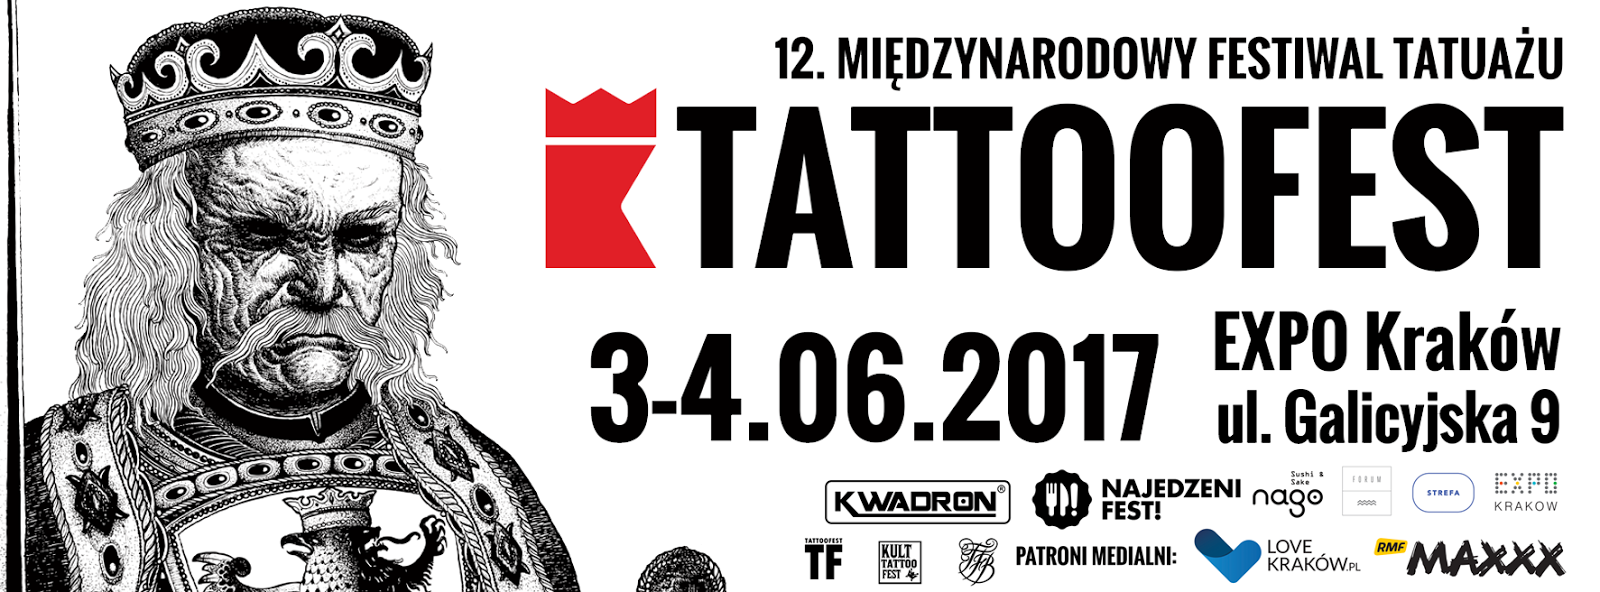 I'll be attending to Tattoofest in Krakow Poland this June